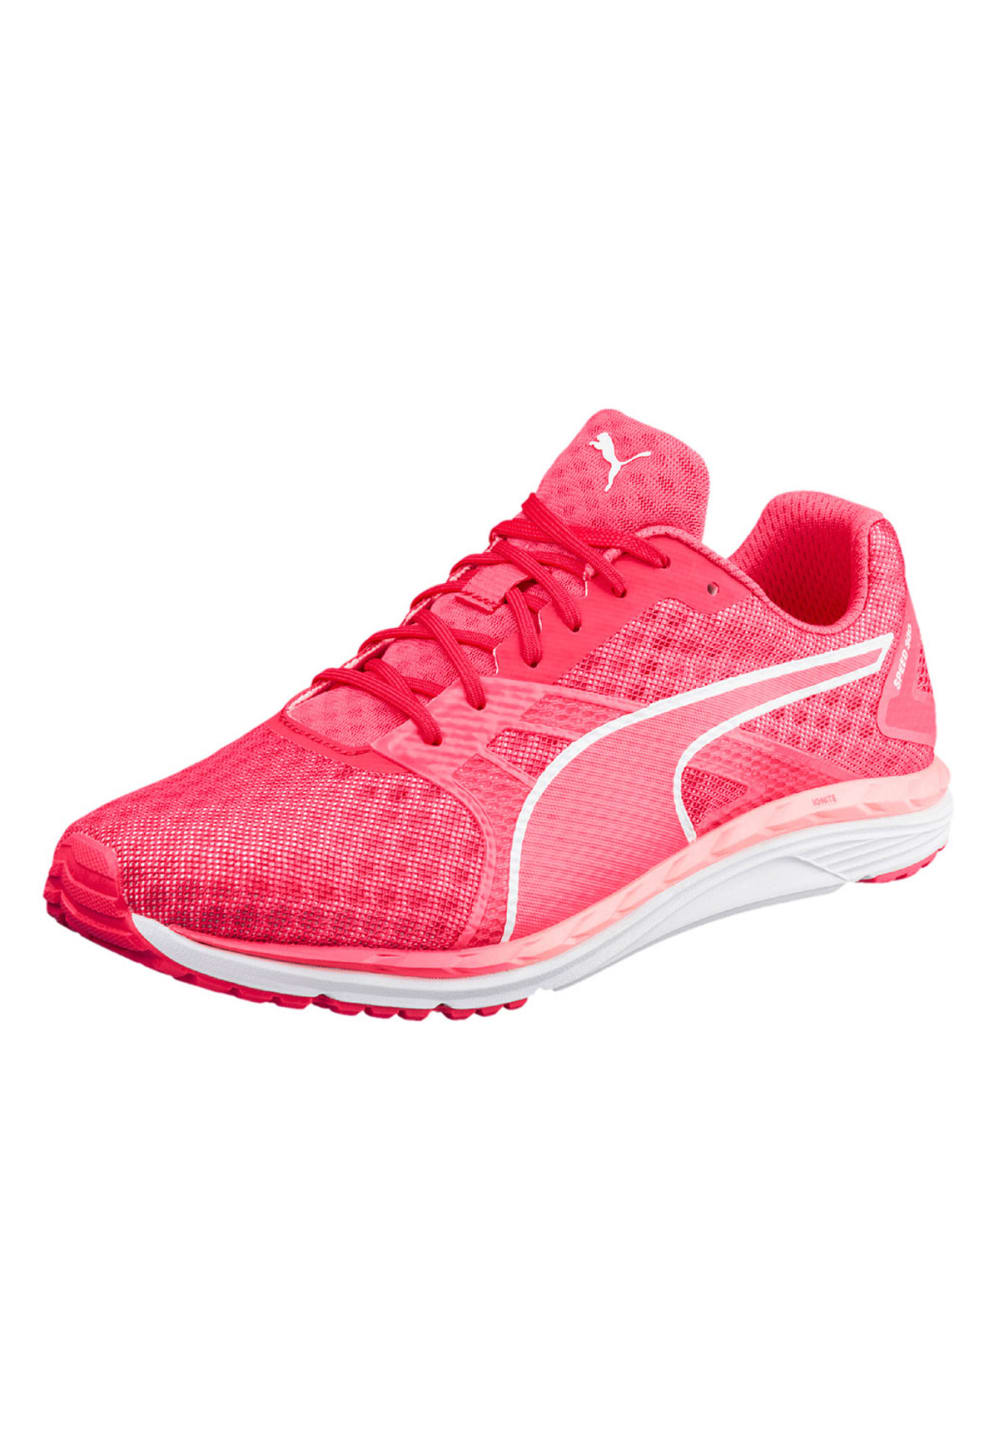 abbffcbc Puma Speed 300 Ignite 3 Wn - Running shoes for Women - Pink